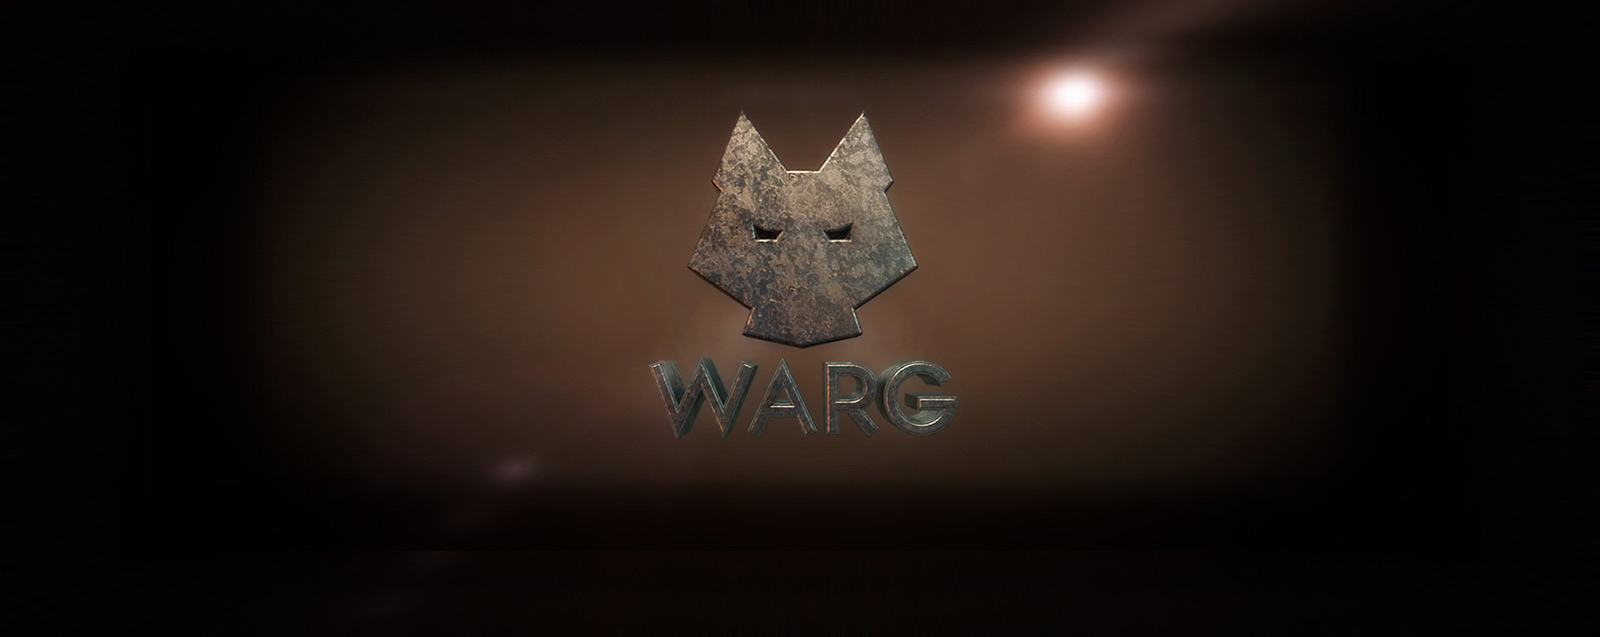 Warg Magic logo